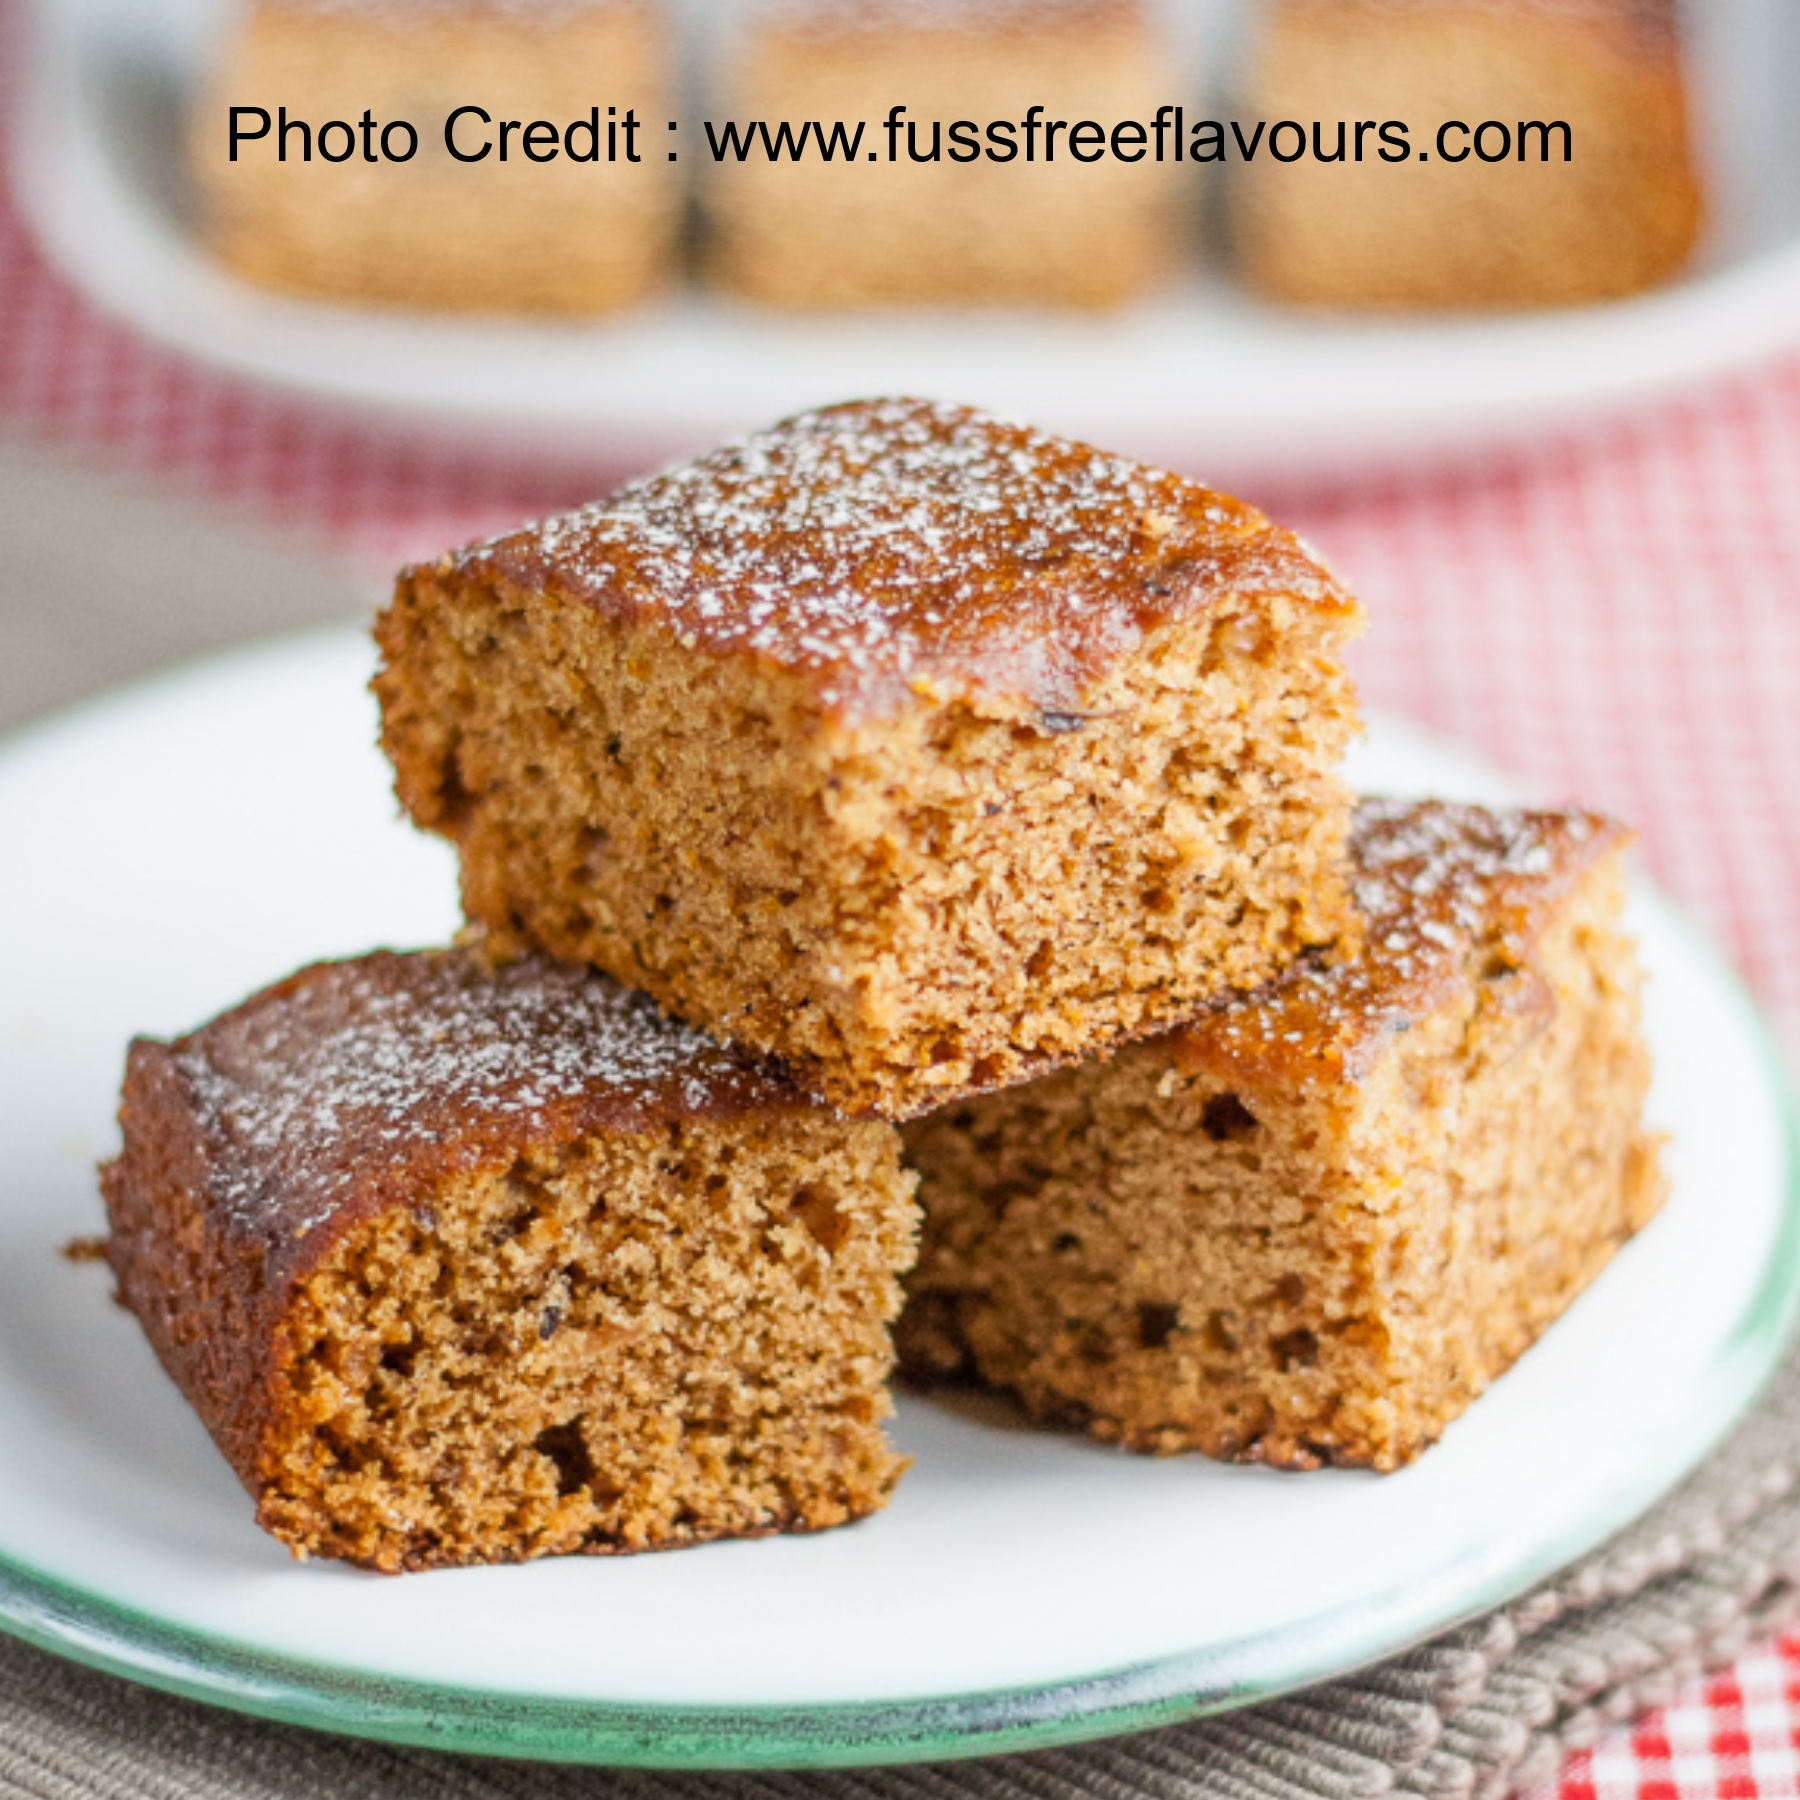 Ginger Cake from Fuss Free Flavours (Dairy Free, Vegan and Egg Free)